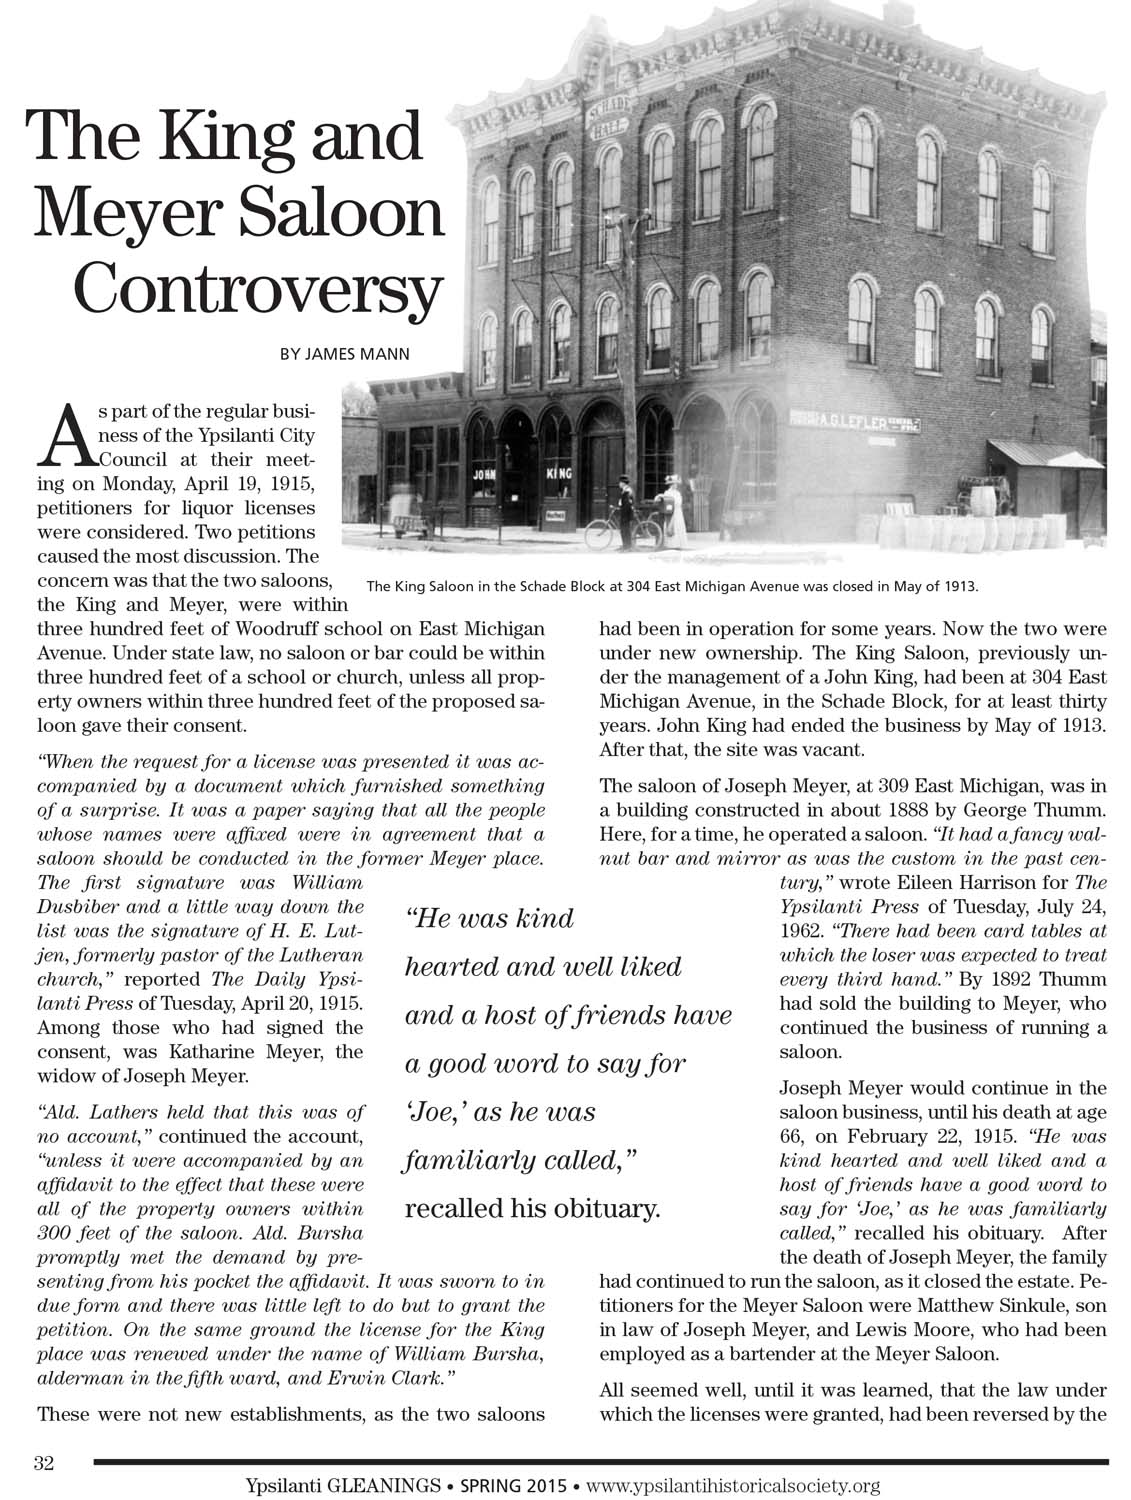 The King and Meyer Saloon Controversy image